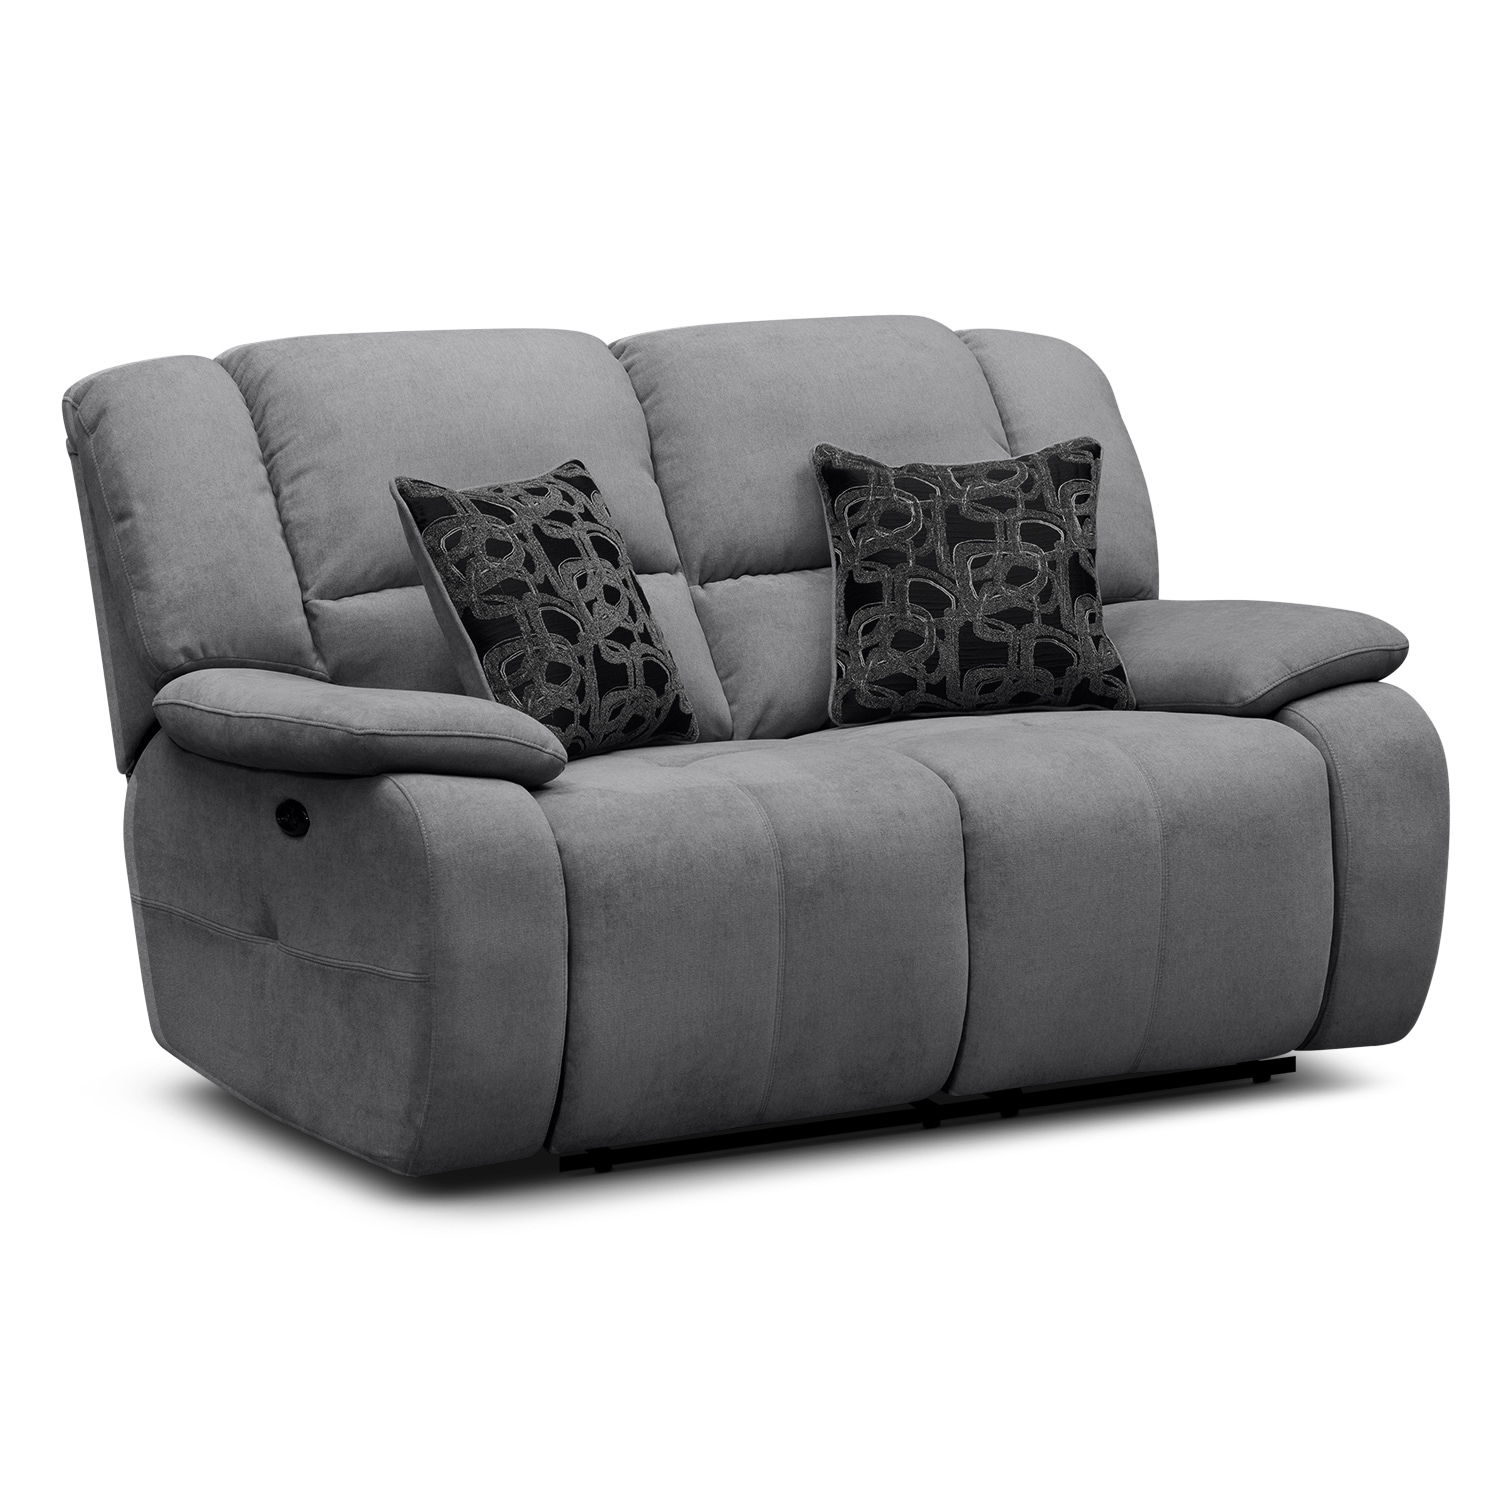 Destin Gray Upholstery Power Reclining Loveseat Value